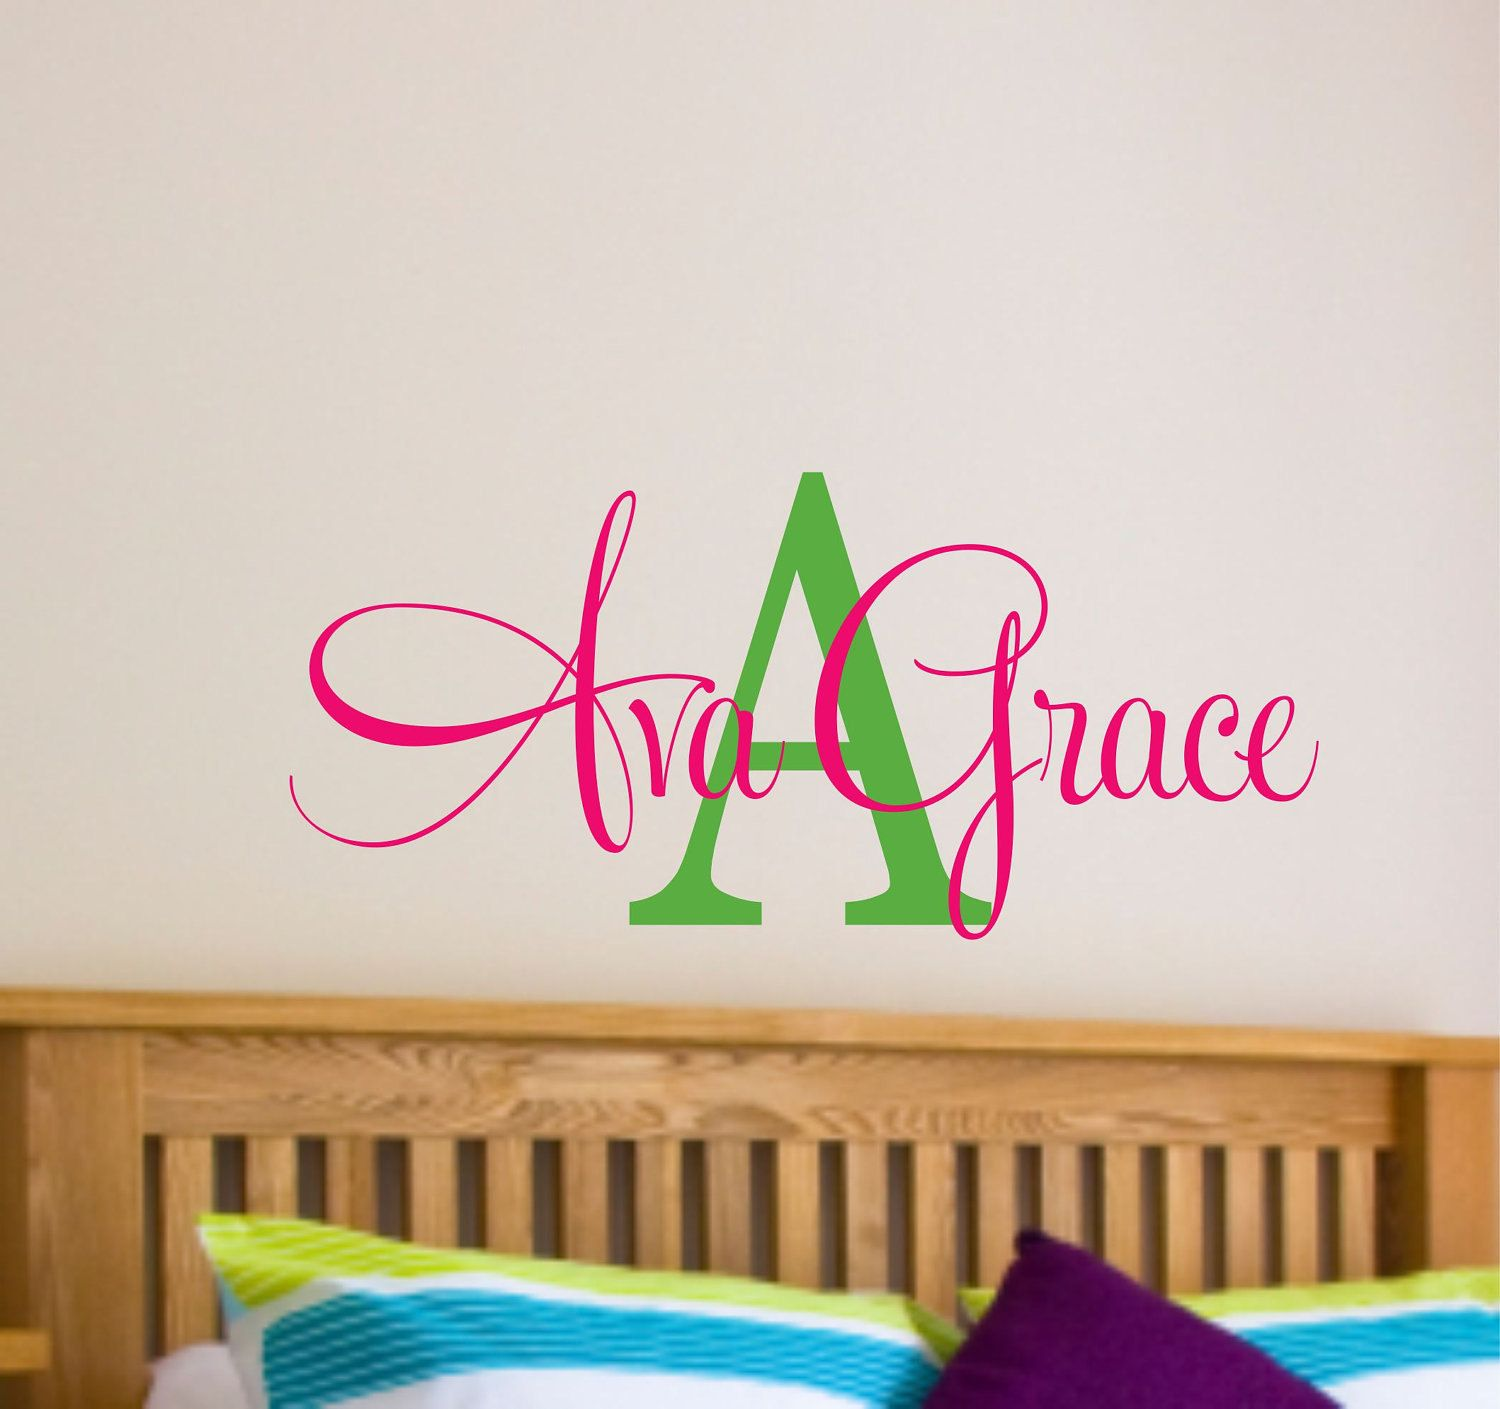 Girls Name Wall Decal   Name Wall Decal   Nursery Wall Decal   Teen Name Wall  Decals   Personalized Wall Decals